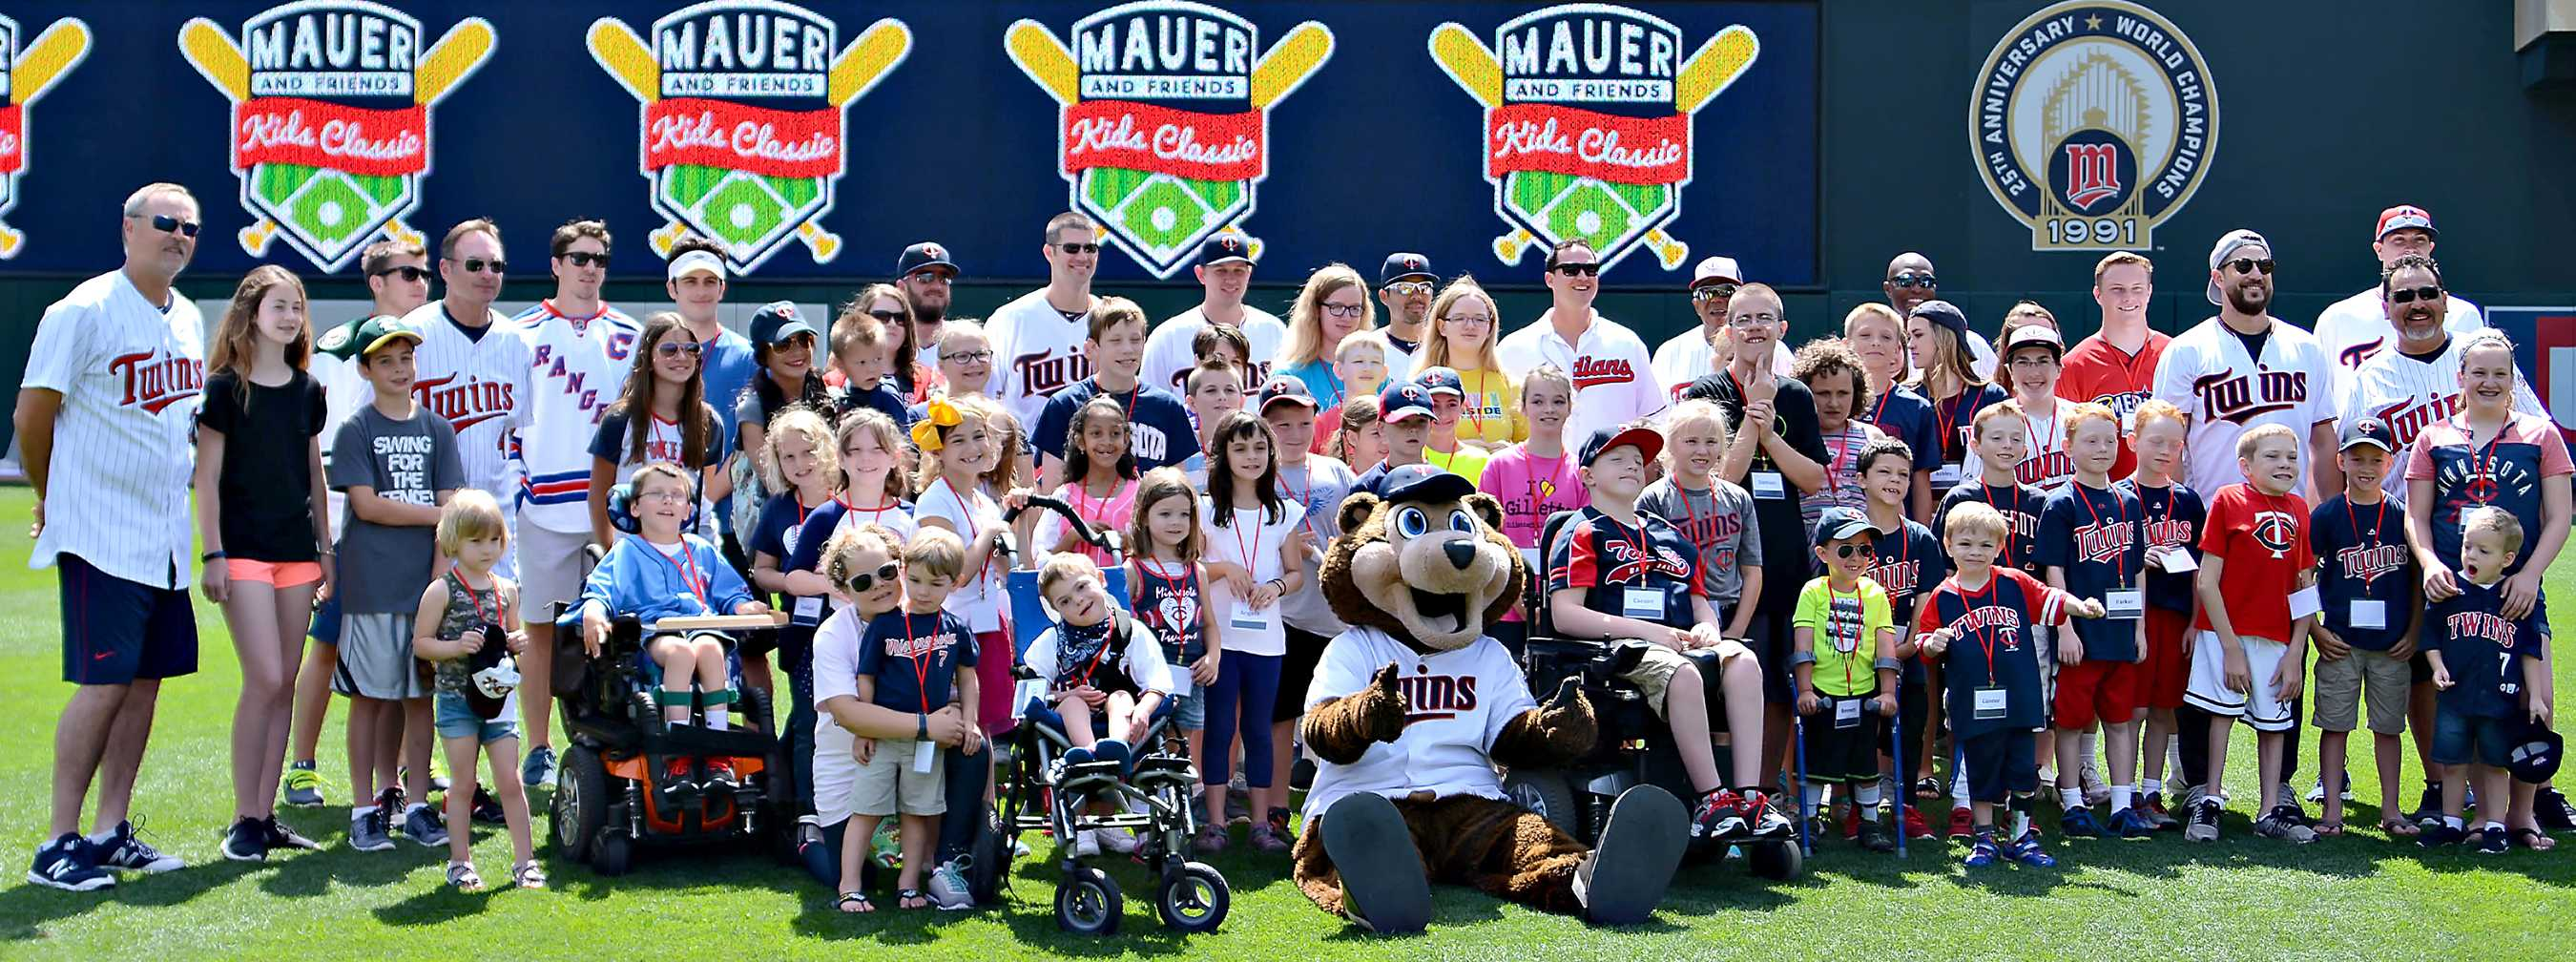 Mauer and Friends Kids Classic for Gillette Children's Specialty Healthcare